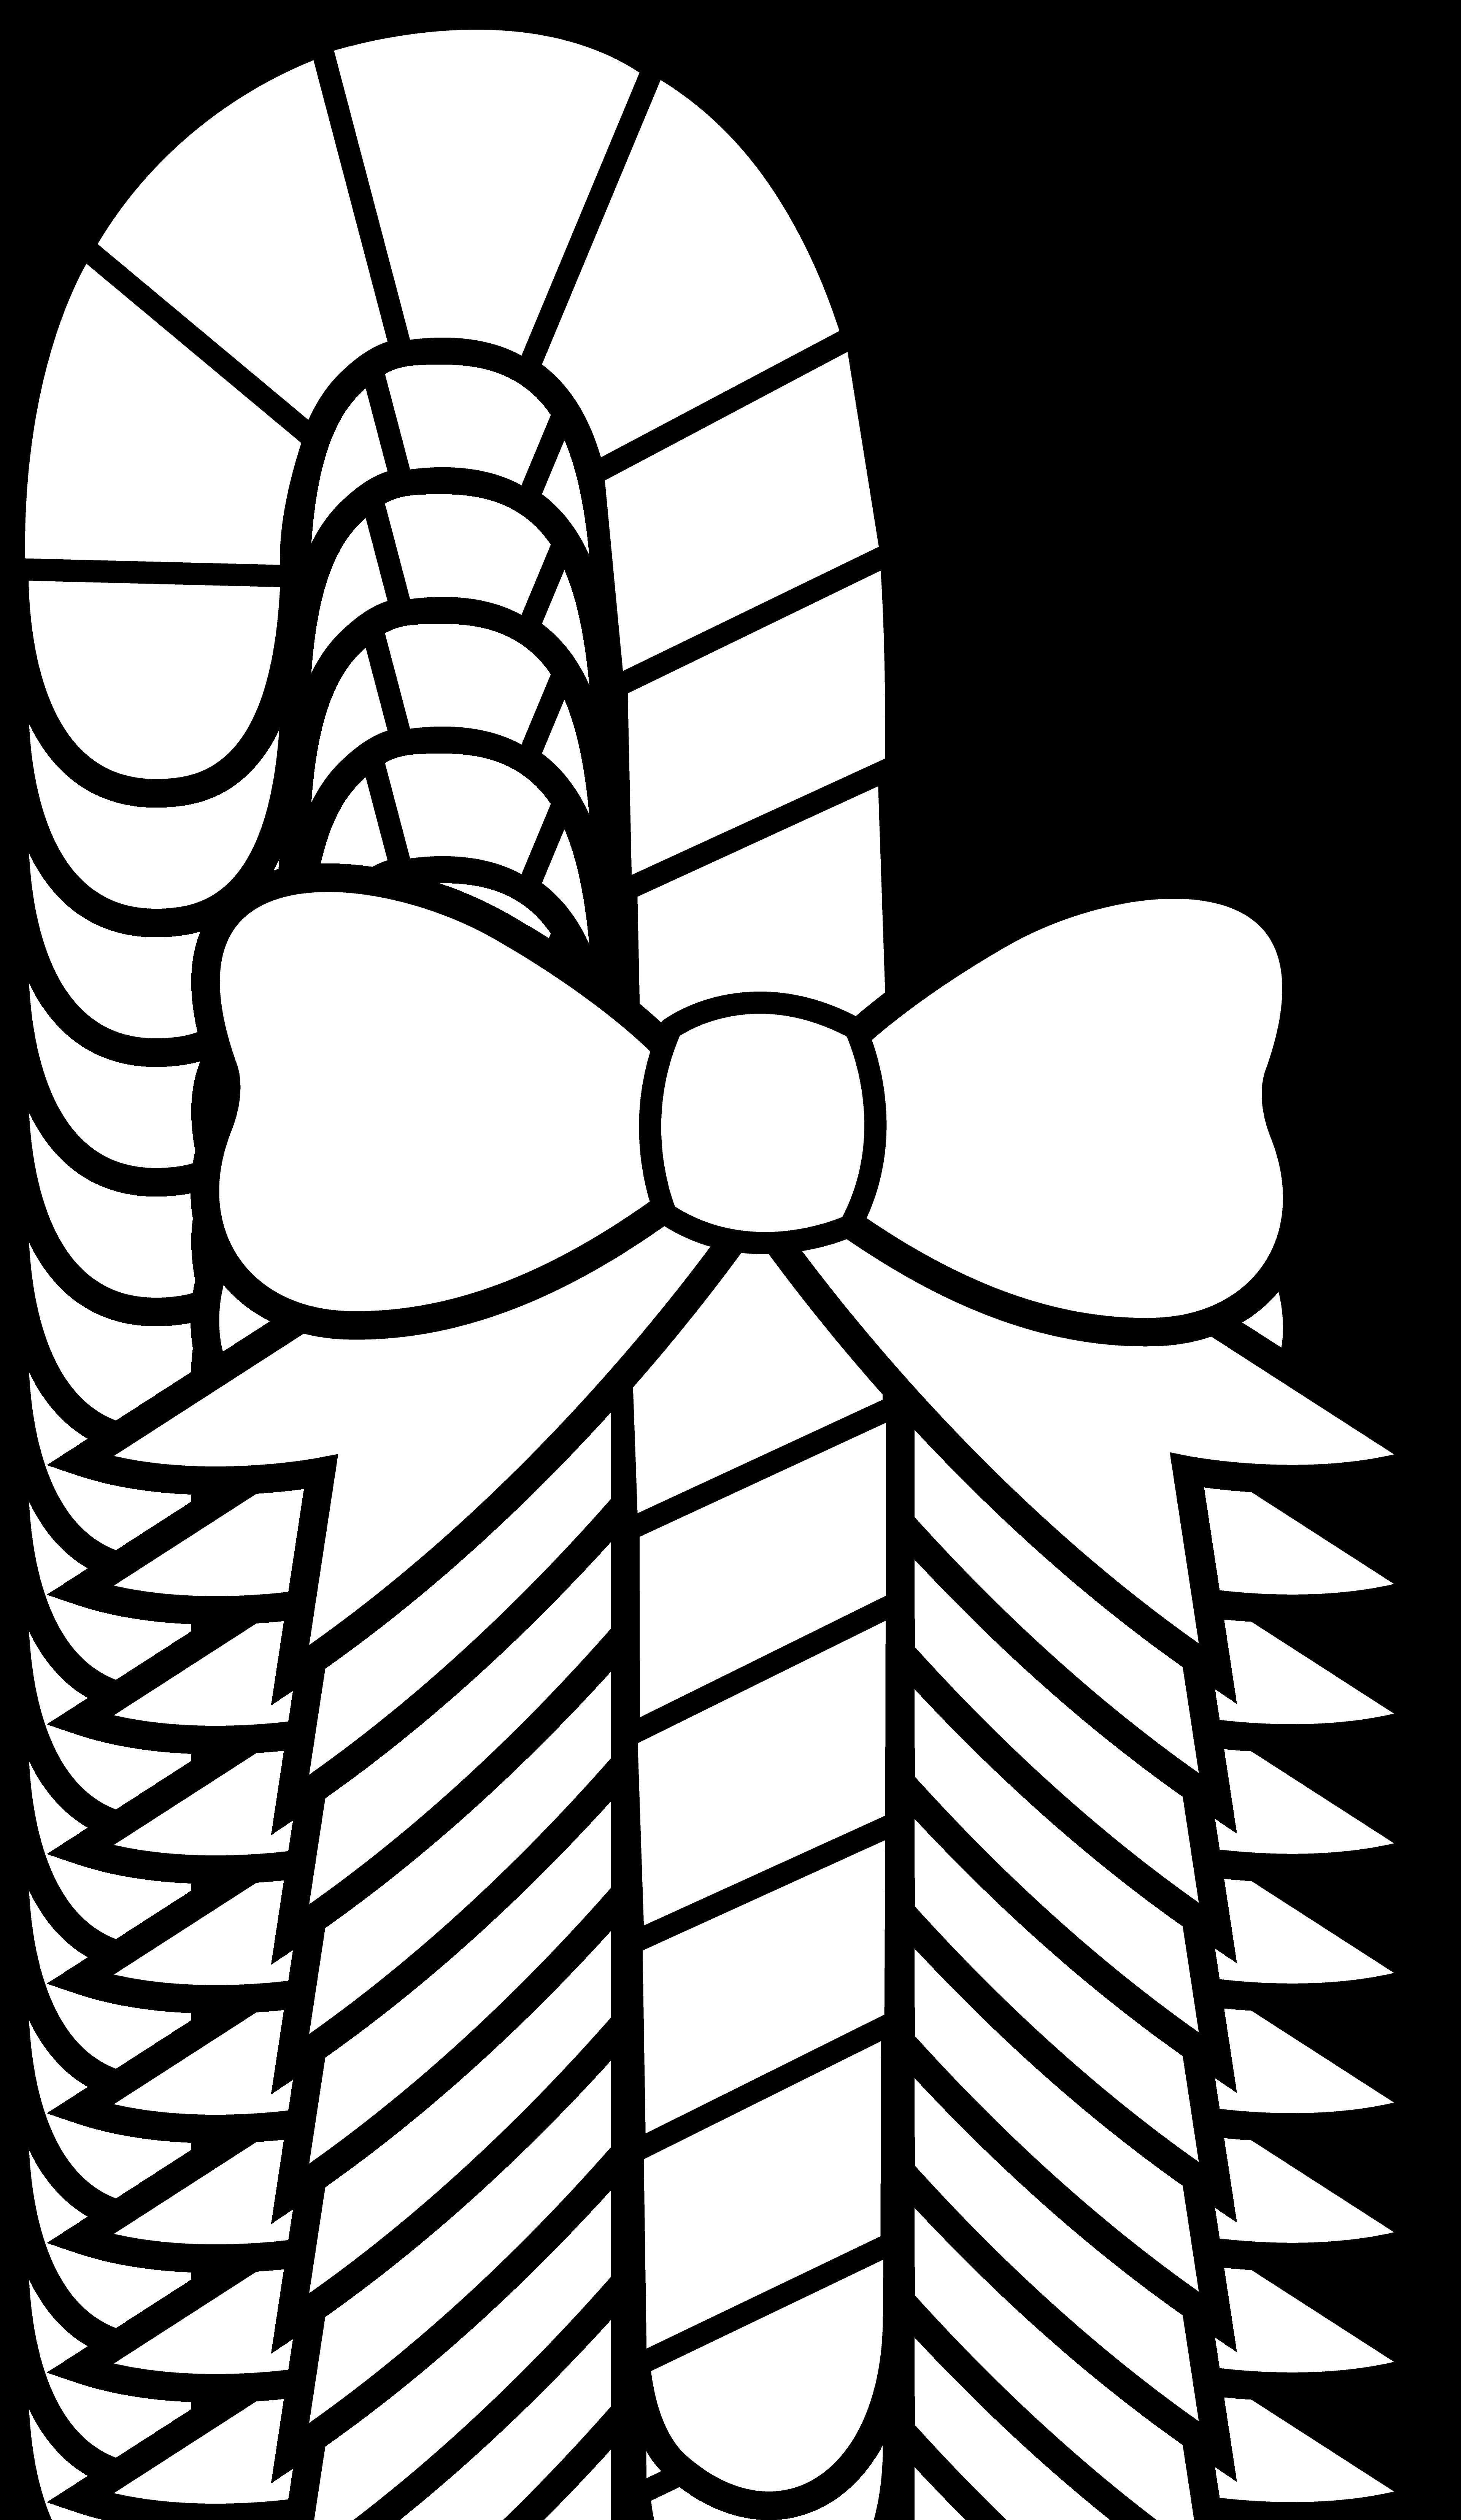 Christmas Candy Cane Coloring Pages  Christmas Candy Canes Coloring Pages AZ Coloring Pages